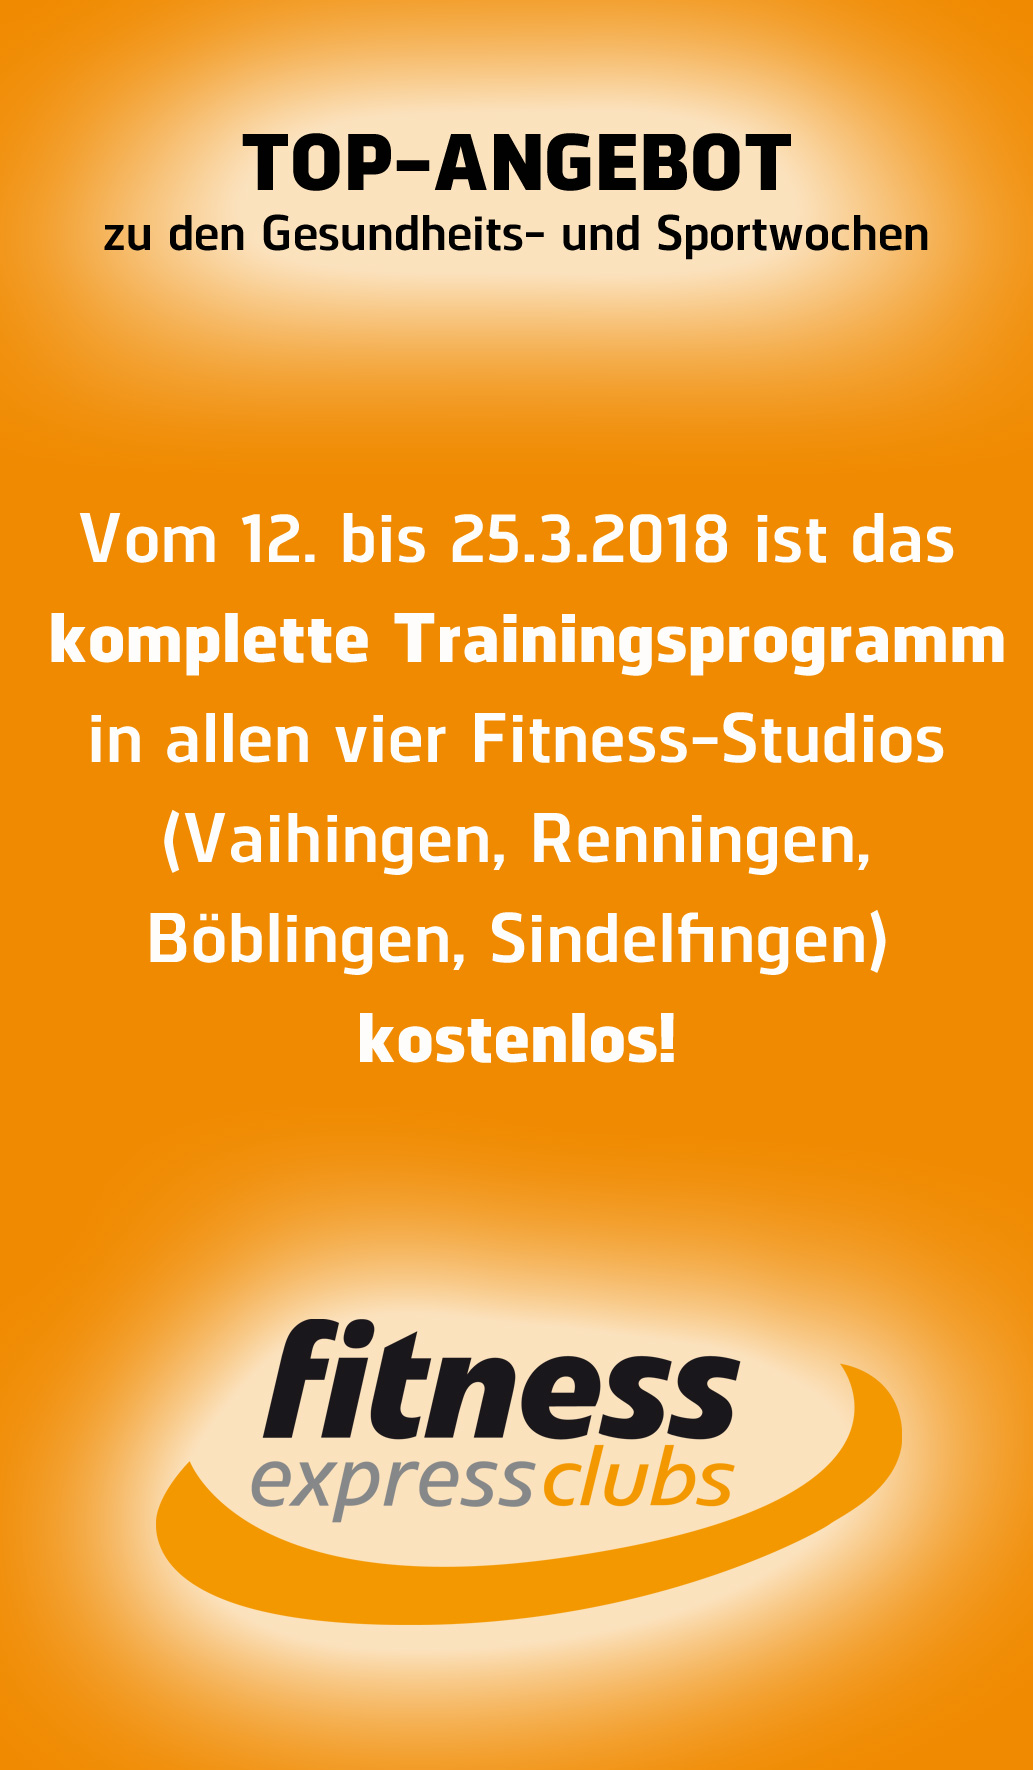 Top Angebot Fitness Clubs